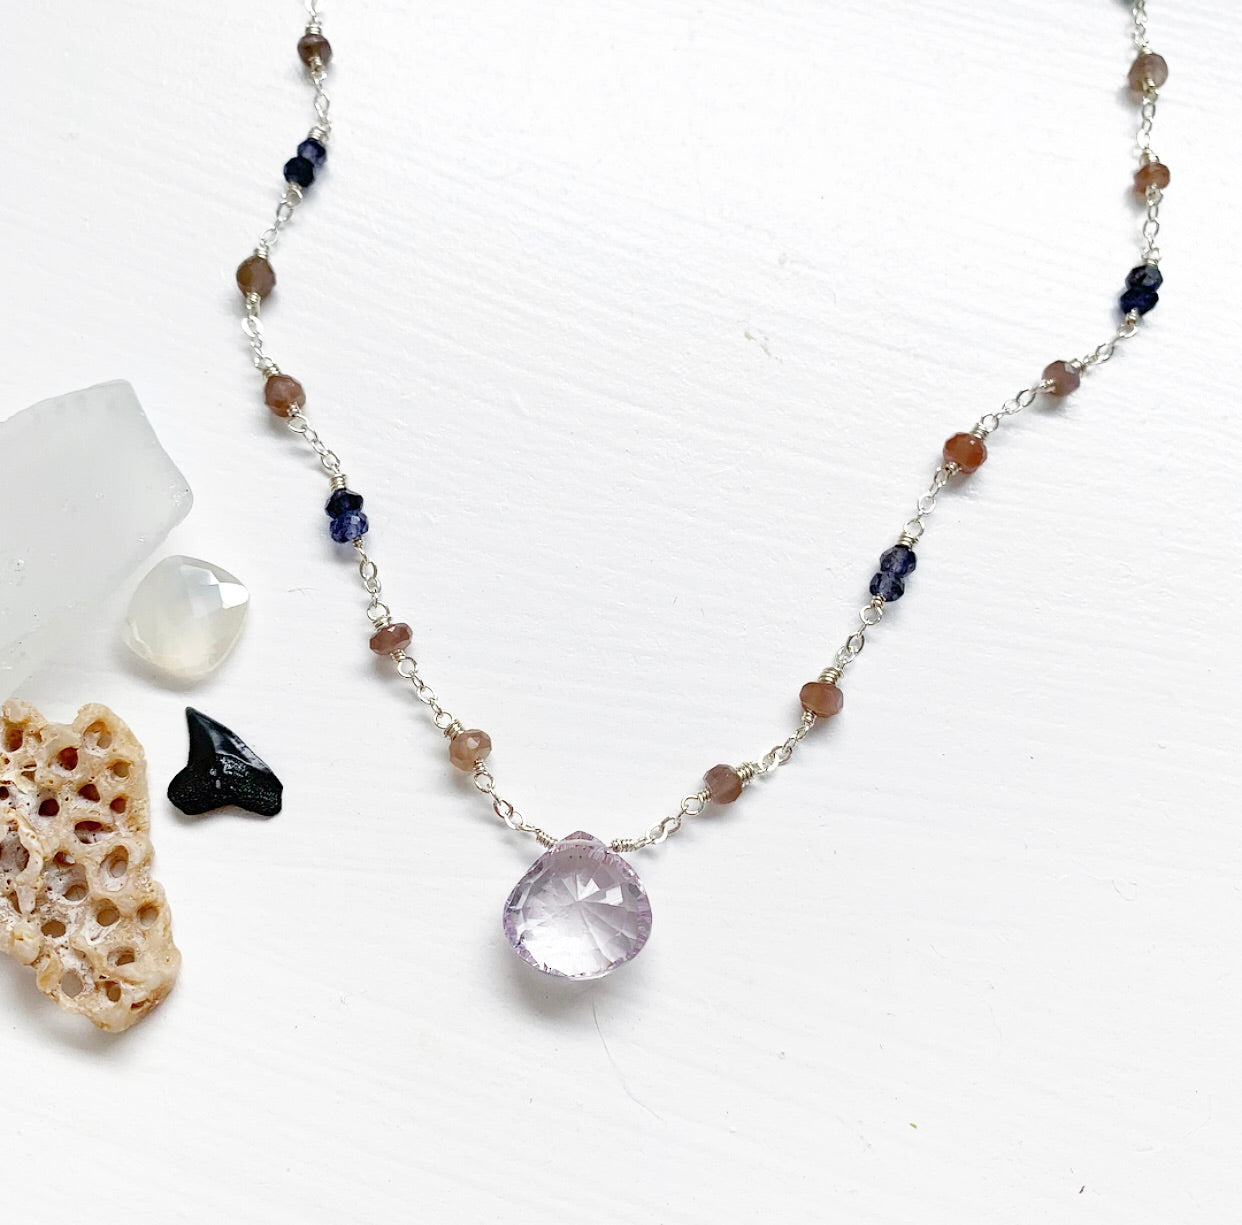 661-Gemstone Layering Necklace